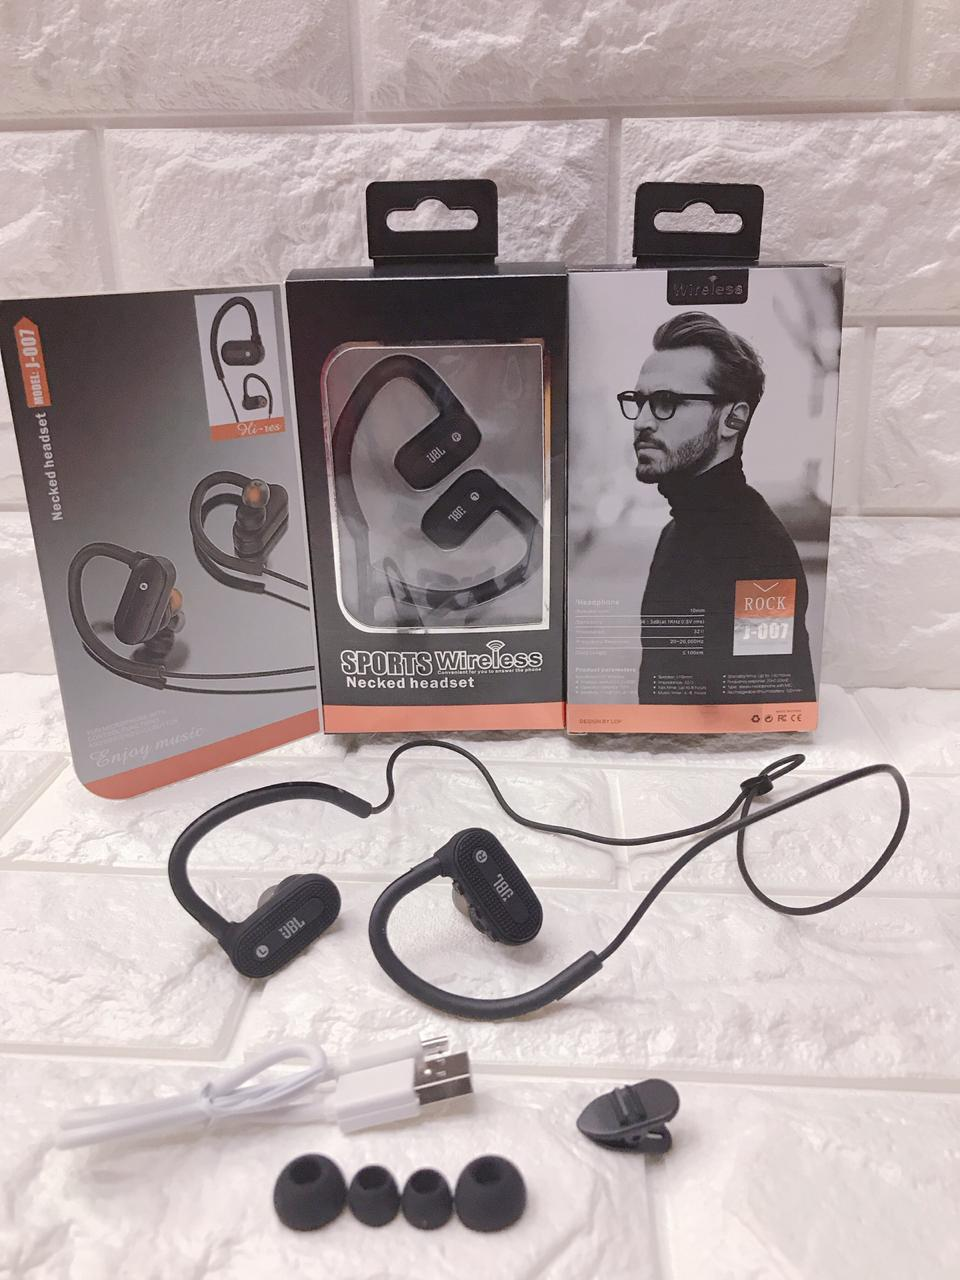 Handsfree Bluetooth JBL J-700